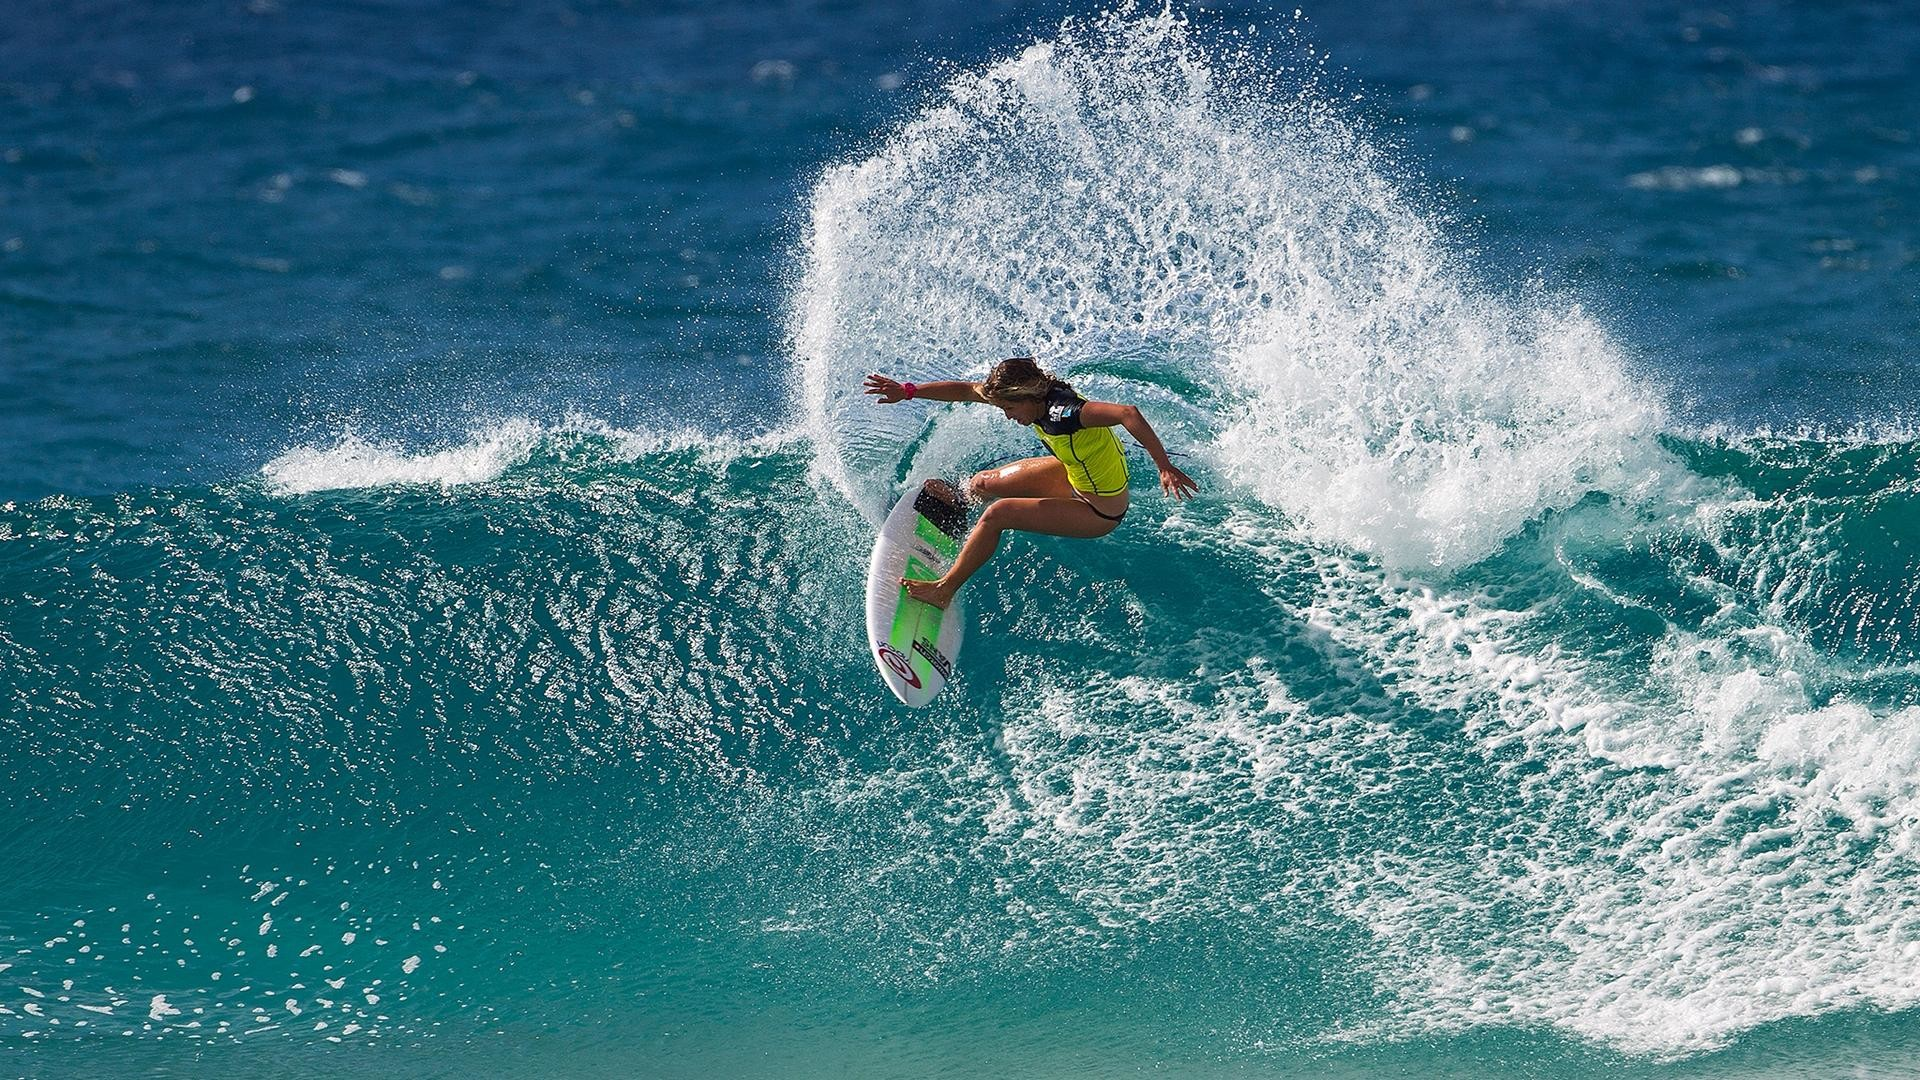 Res: 1920x1080, New Surfing High Quality Wallpapers 2015 ...